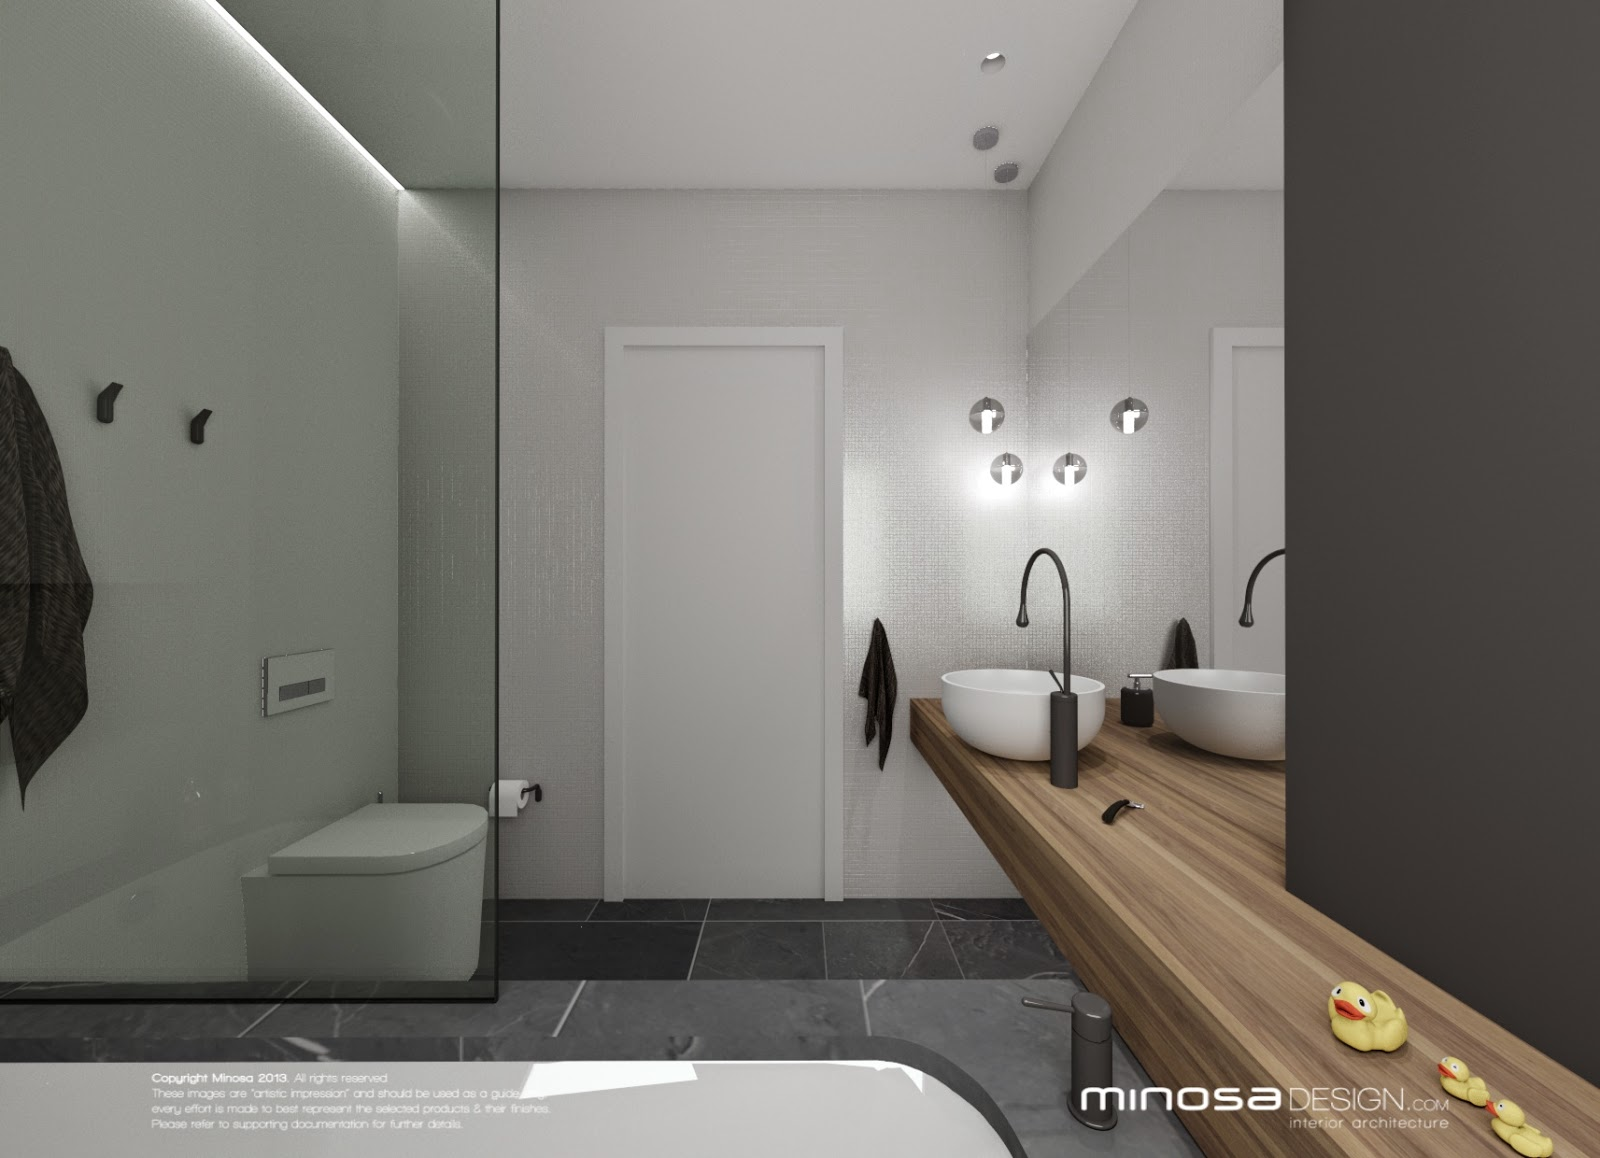 we hope you enjoy these images as much as we do and have had making them - Main Bathroom Designs